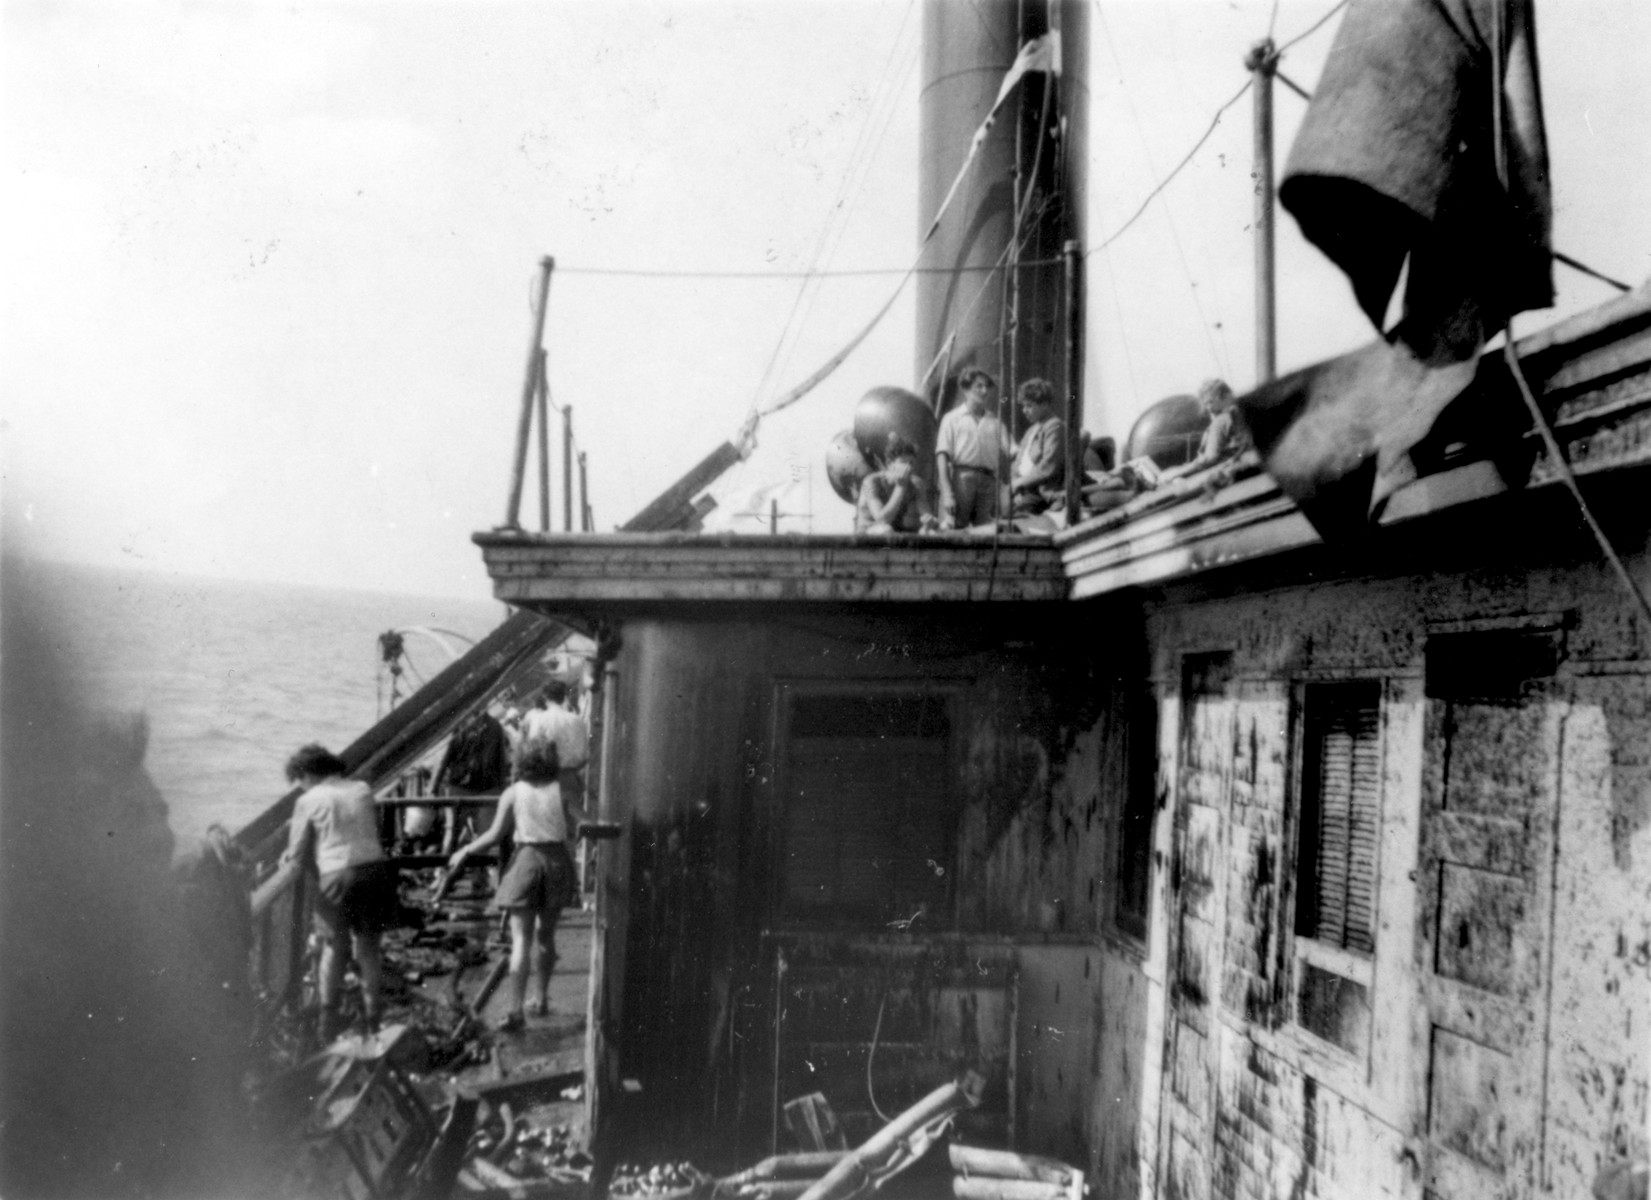 Exodus 1947 passengers survey the damage the morning after the battle with the British boarding party.